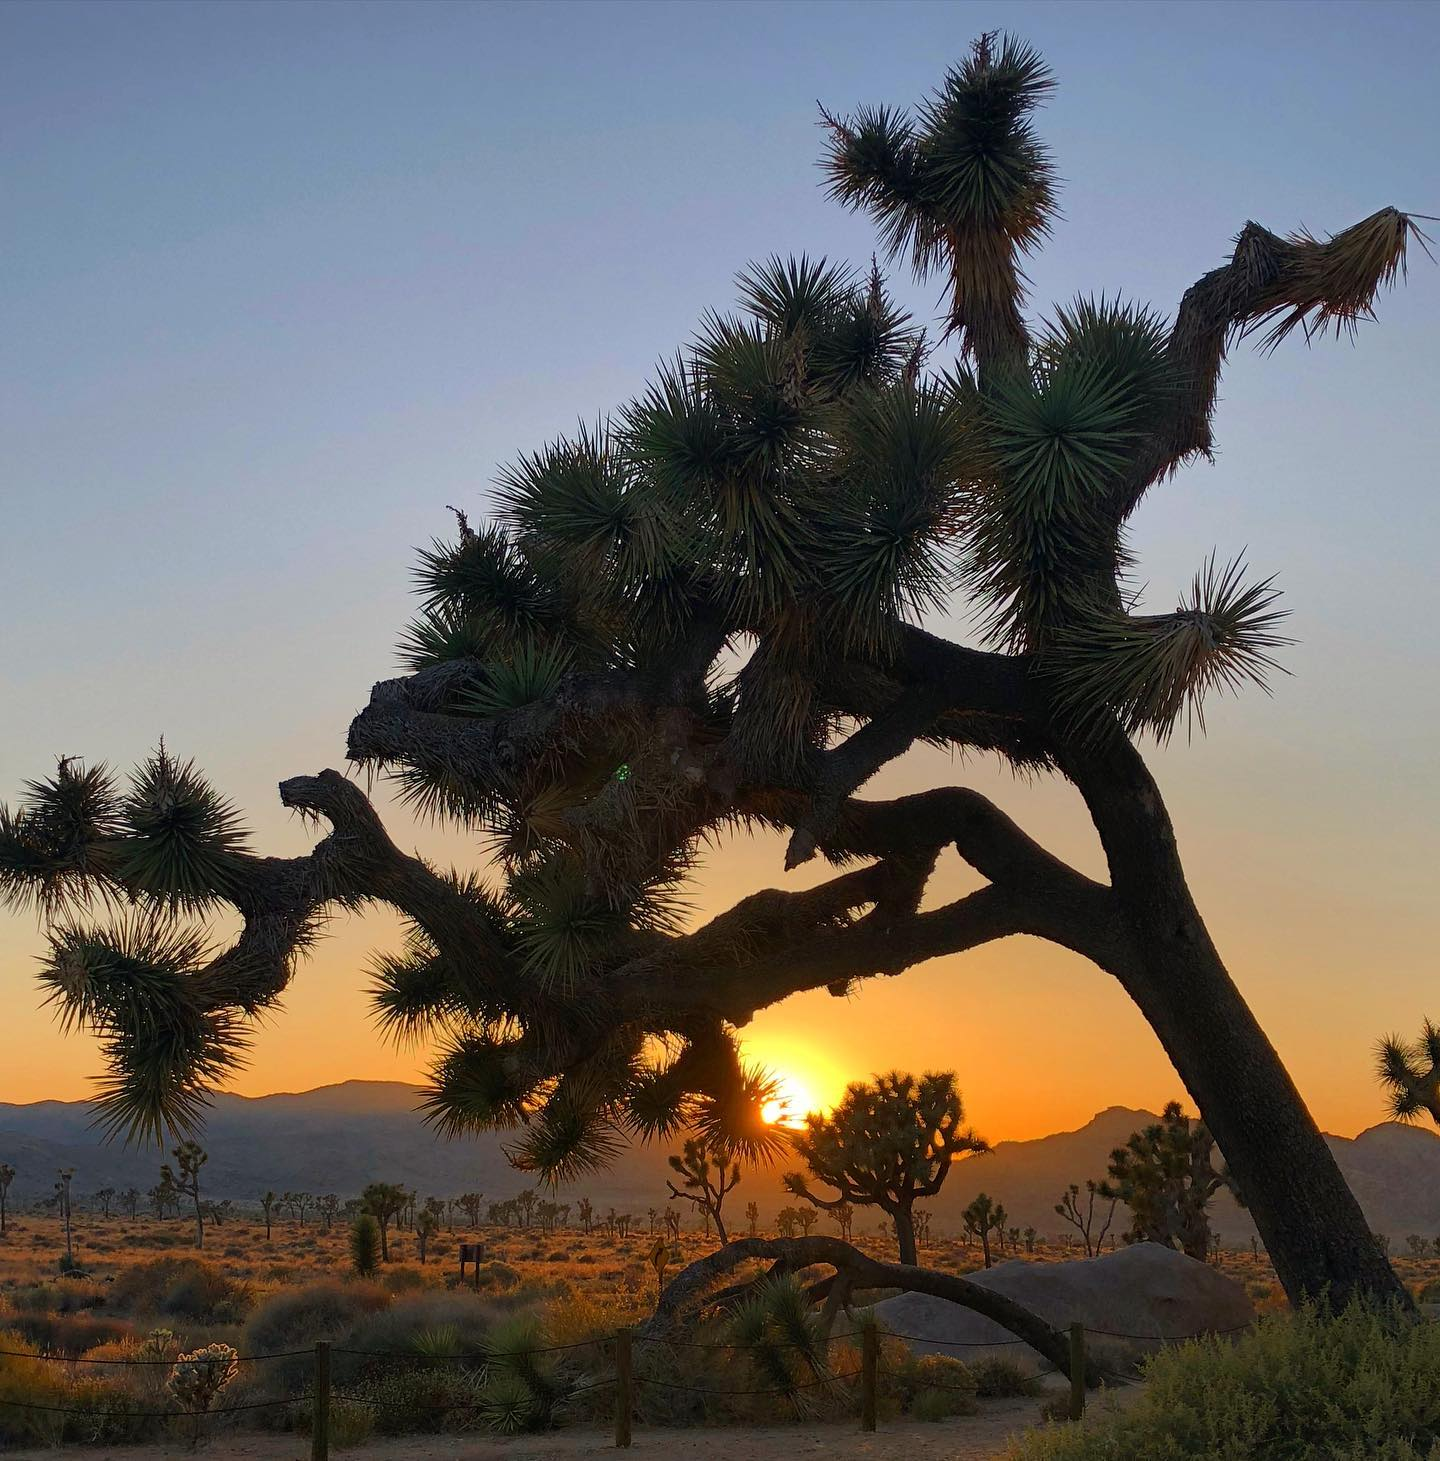 Joshua Tree NP, California Joshua Trees are so photogenic😉 #usa #us #usareisen #usatravel #usatravels #nationalparksusa #joshuatree #joshuatreenationalpark #california #californialove #sunsetphotography #sunset #desert #desertvibes #desertphotography #naturephotography #naturelovers #travelphotography #reisefotografie #travelgram #picoftheday #instagood #travelawesome #usaaddicted #usalove #usaliebe #californiablogger #travelblog #reiseblog #travelblogger